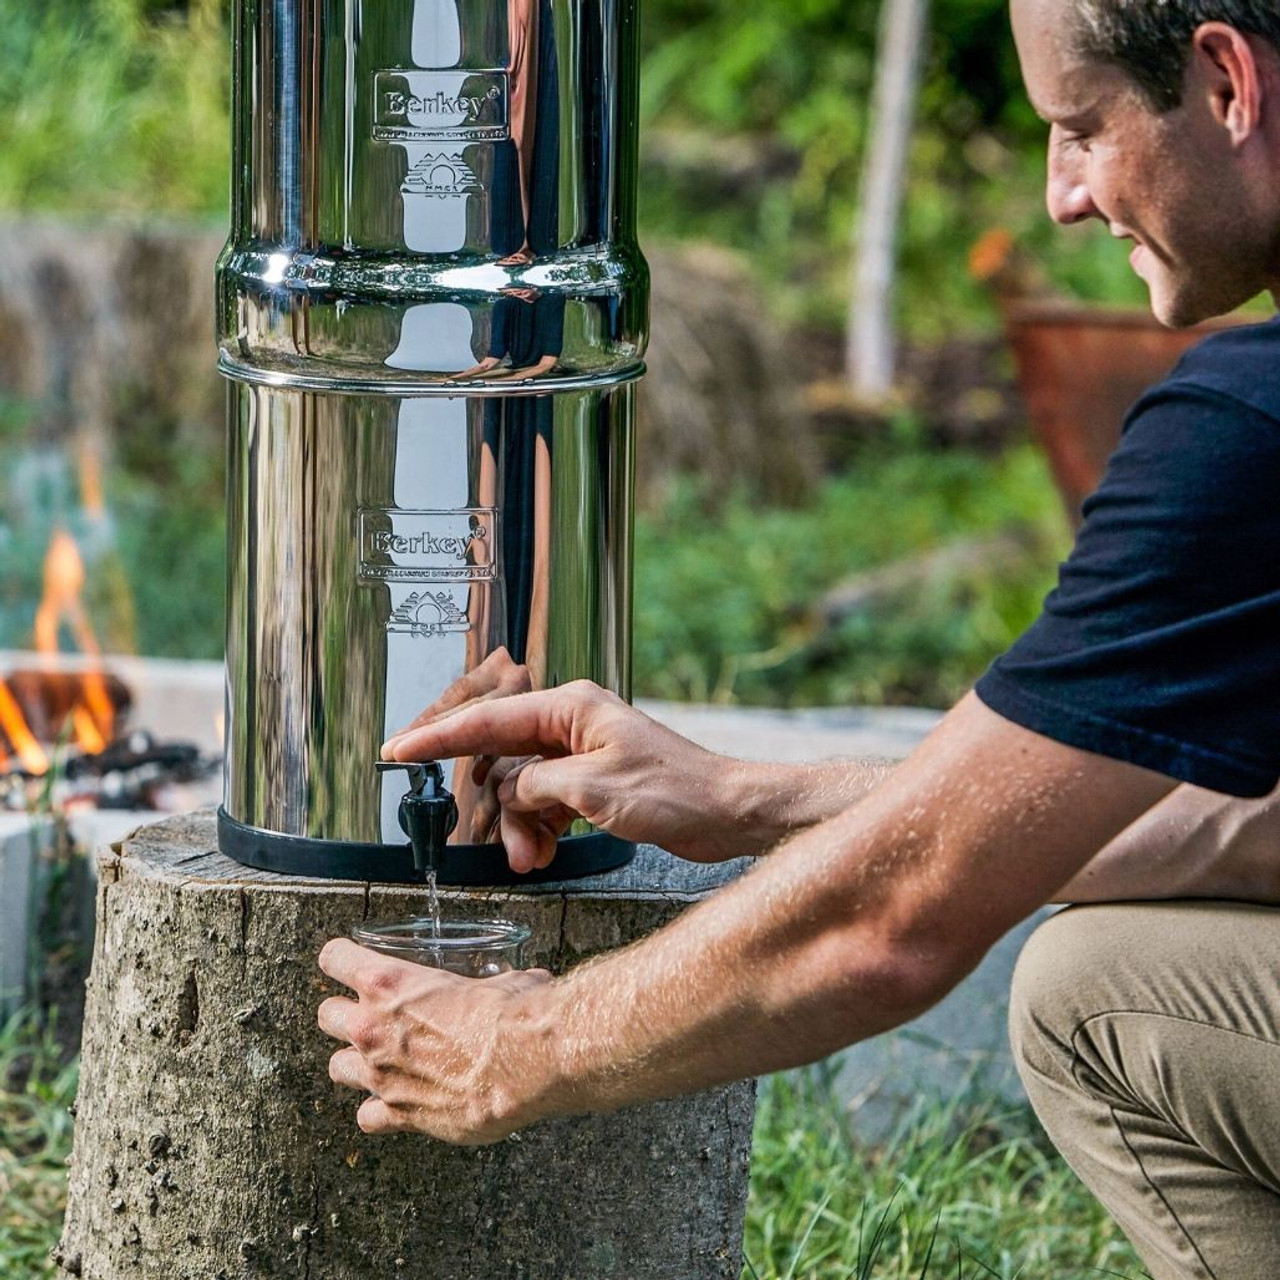 Clean, filtered water at your campsite without using plastic bottles